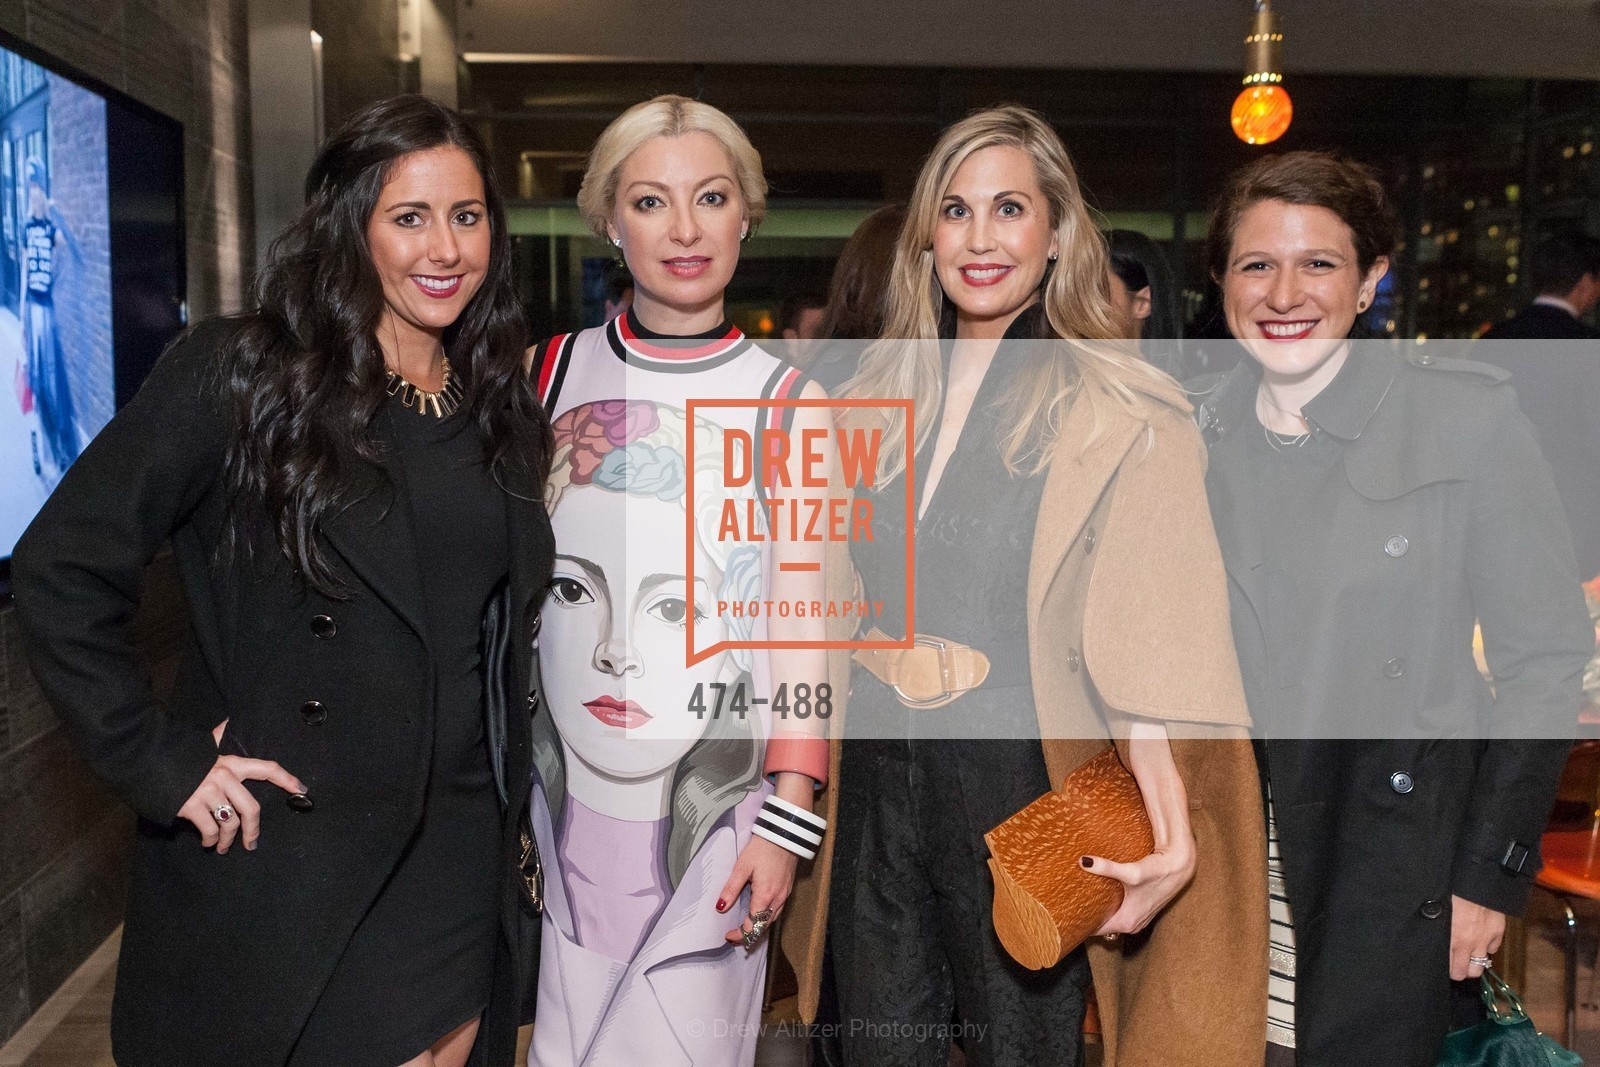 Brittany Welby, Sonya Molodetskaya, Heidi Pettit, Alex Apatoff, SONYA MOLODETSKAYA's Birthday Party, US. The Battery Penthouse, April 1st, 2014,Drew Altizer, Drew Altizer Photography, full-service agency, private events, San Francisco photographer, photographer california